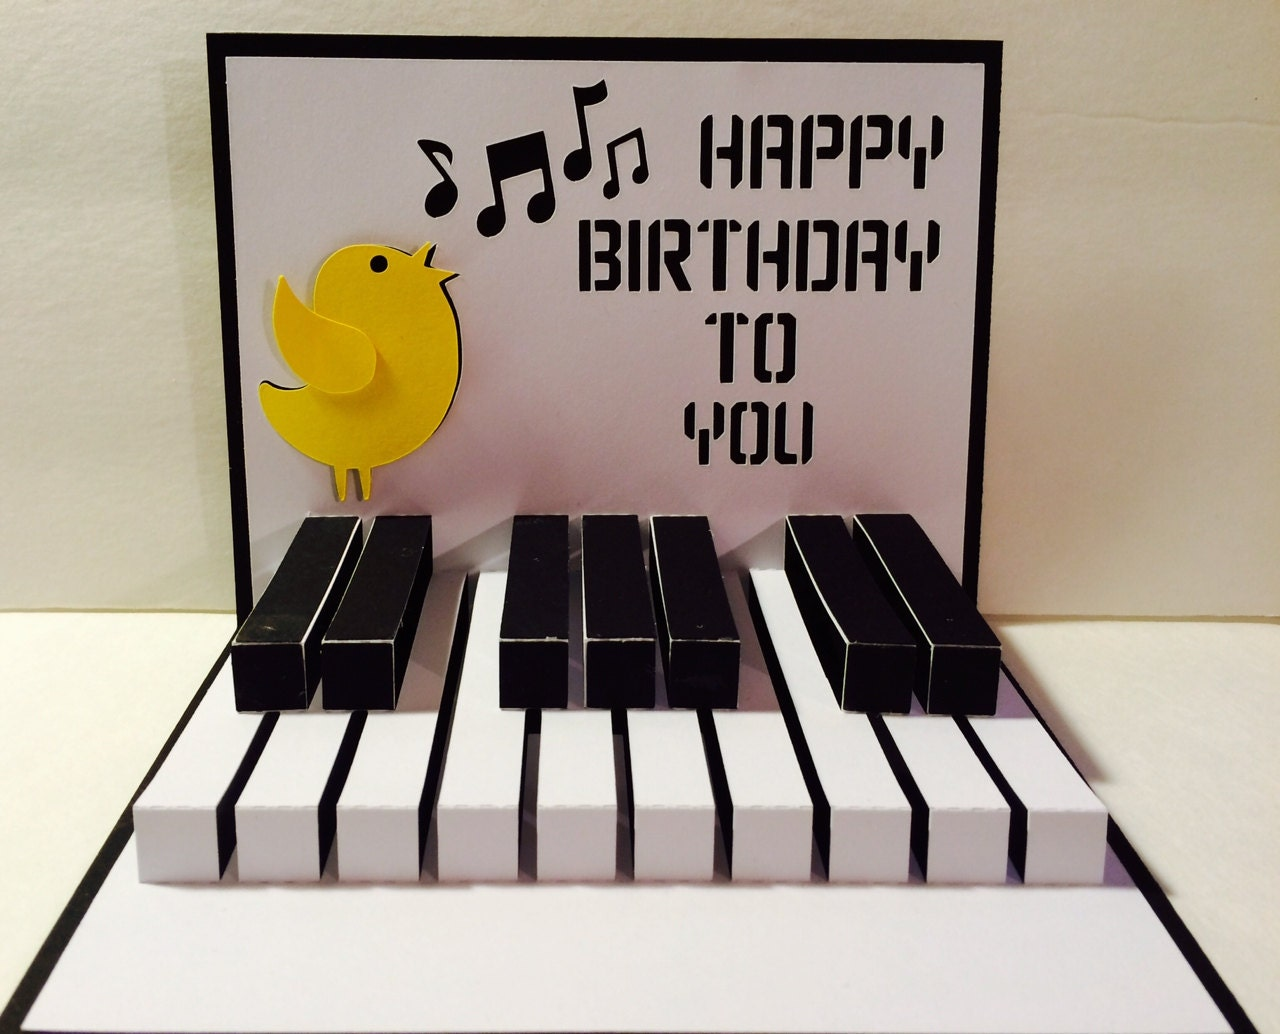 Happy Birthday Piano 3d Popup Svg Cutting File